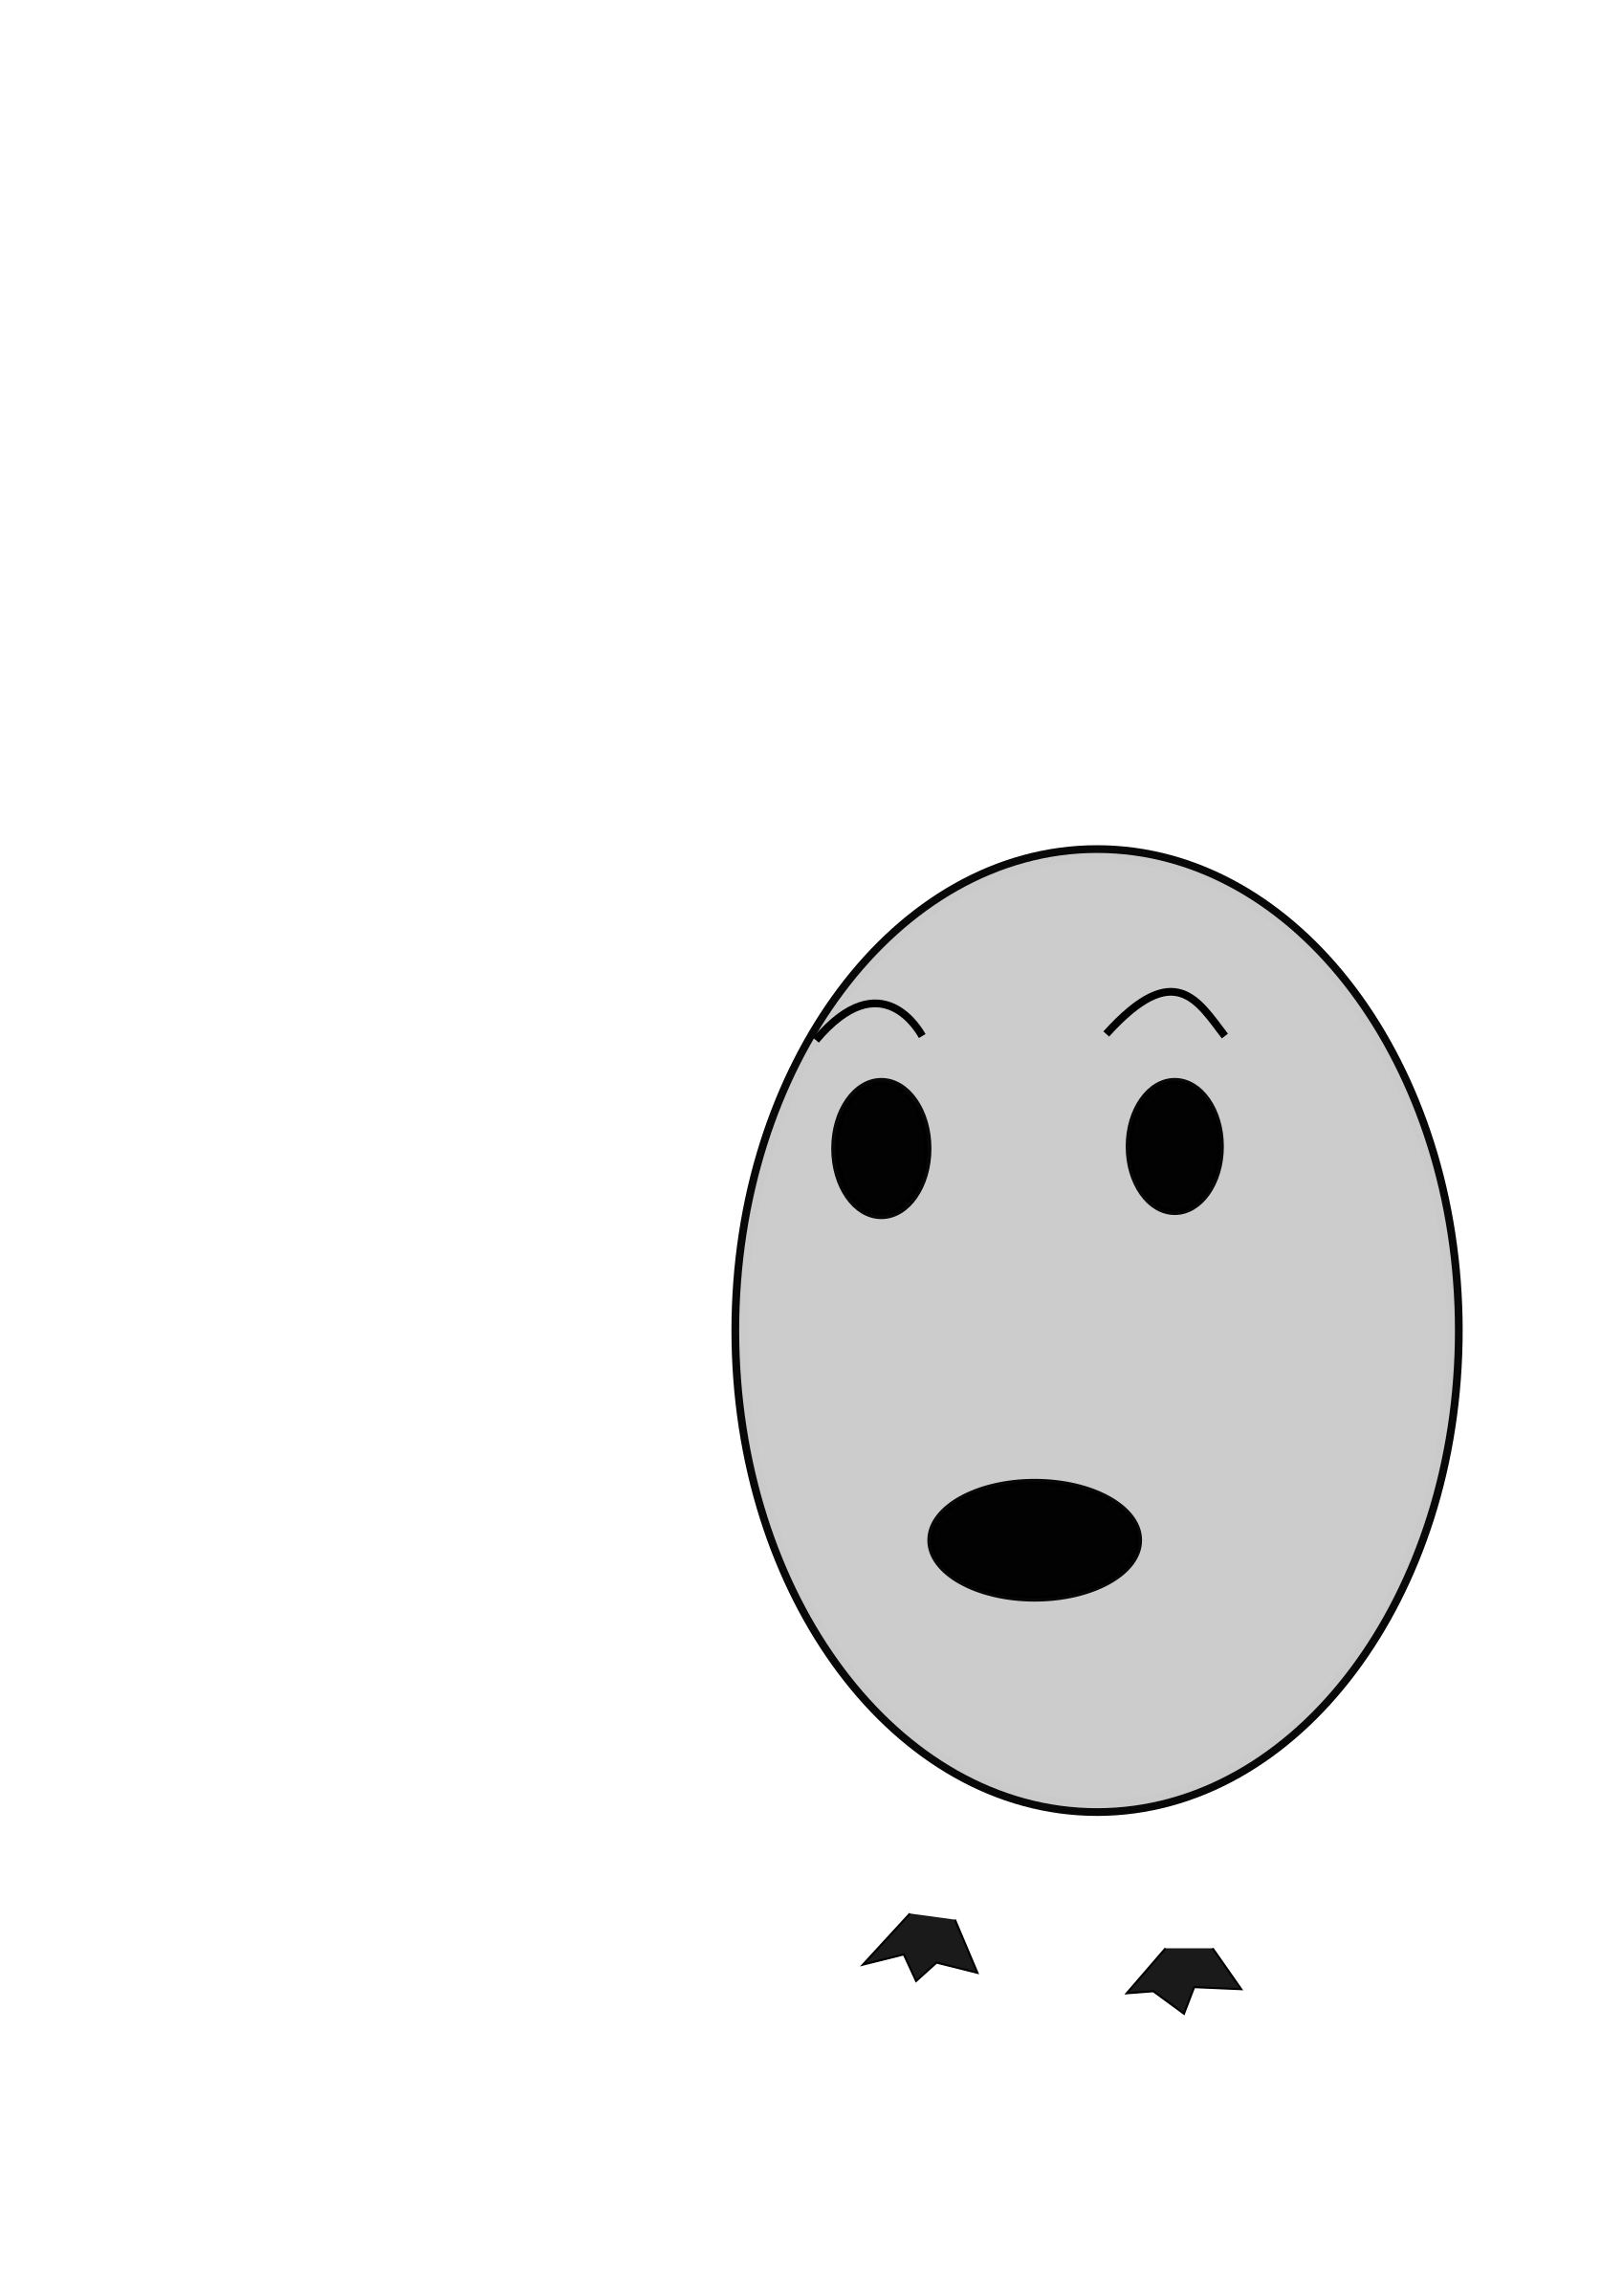 Dimple drawing. Clipart egg big image